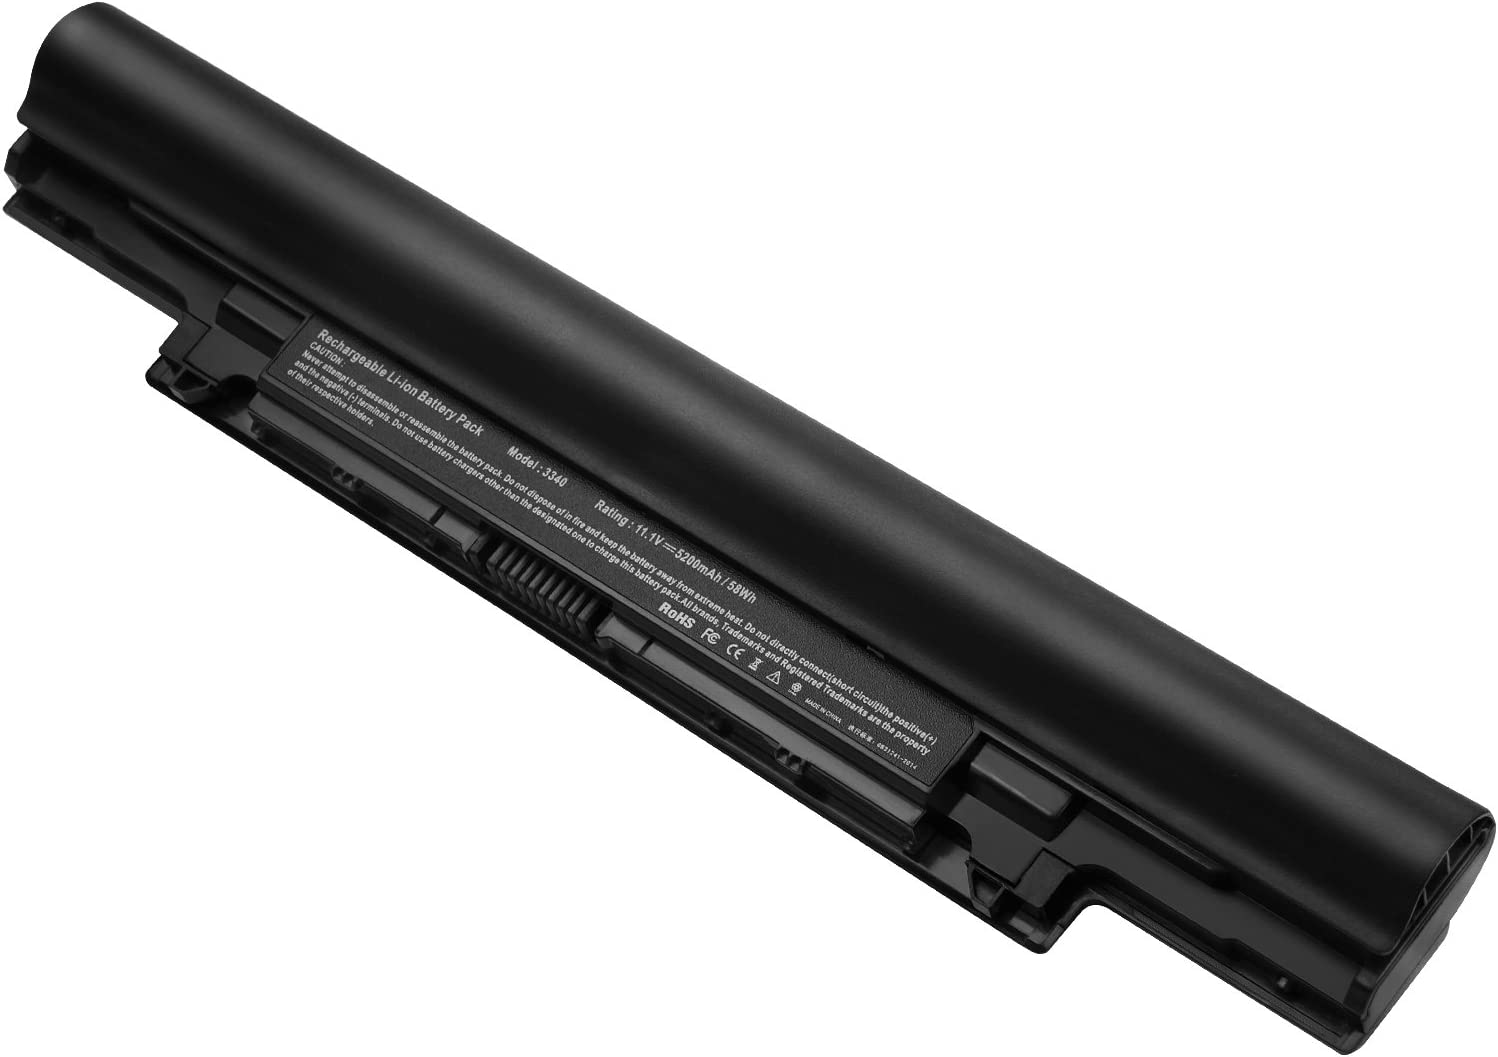 3340 Battery for Dell Latitude 3340 Battery, Dell V131 2nd generation, Fits 451-BBJB, 451-BBIY, 451-BBIZ 7WV3V, H4PJP, JR6XC, YFDF9, YFOF9, 5MTD8